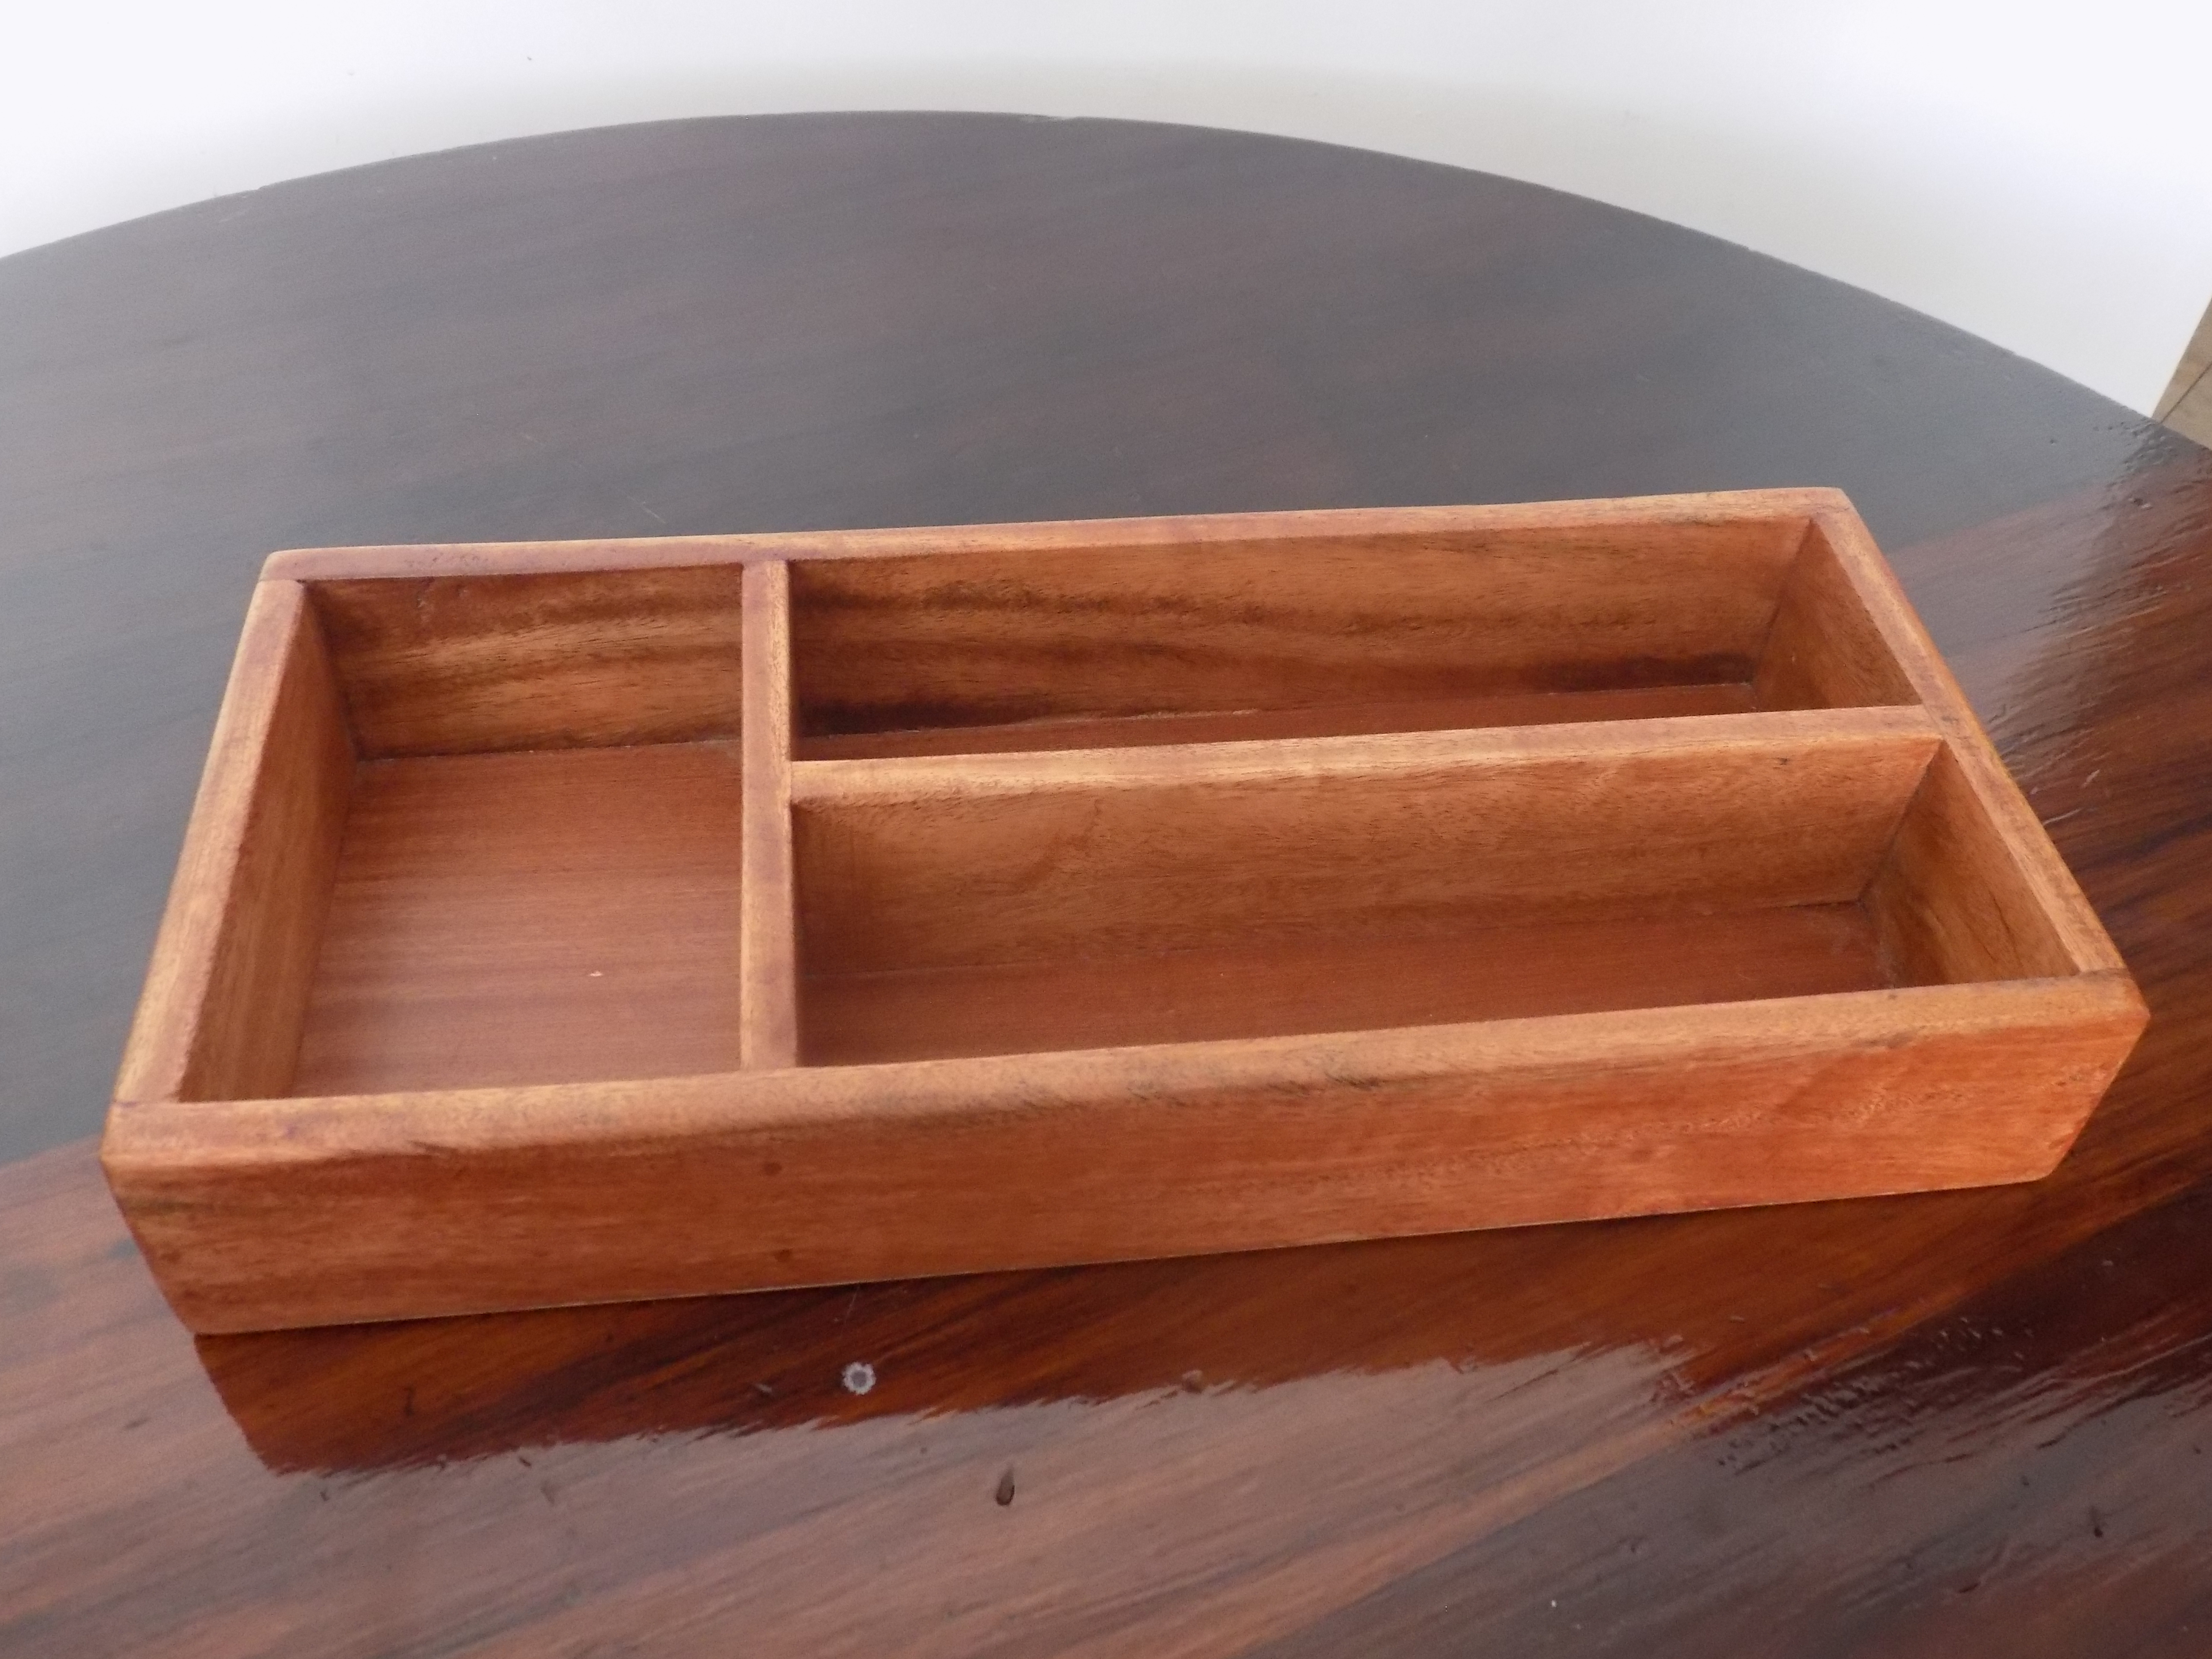 Custom made cutlery tray